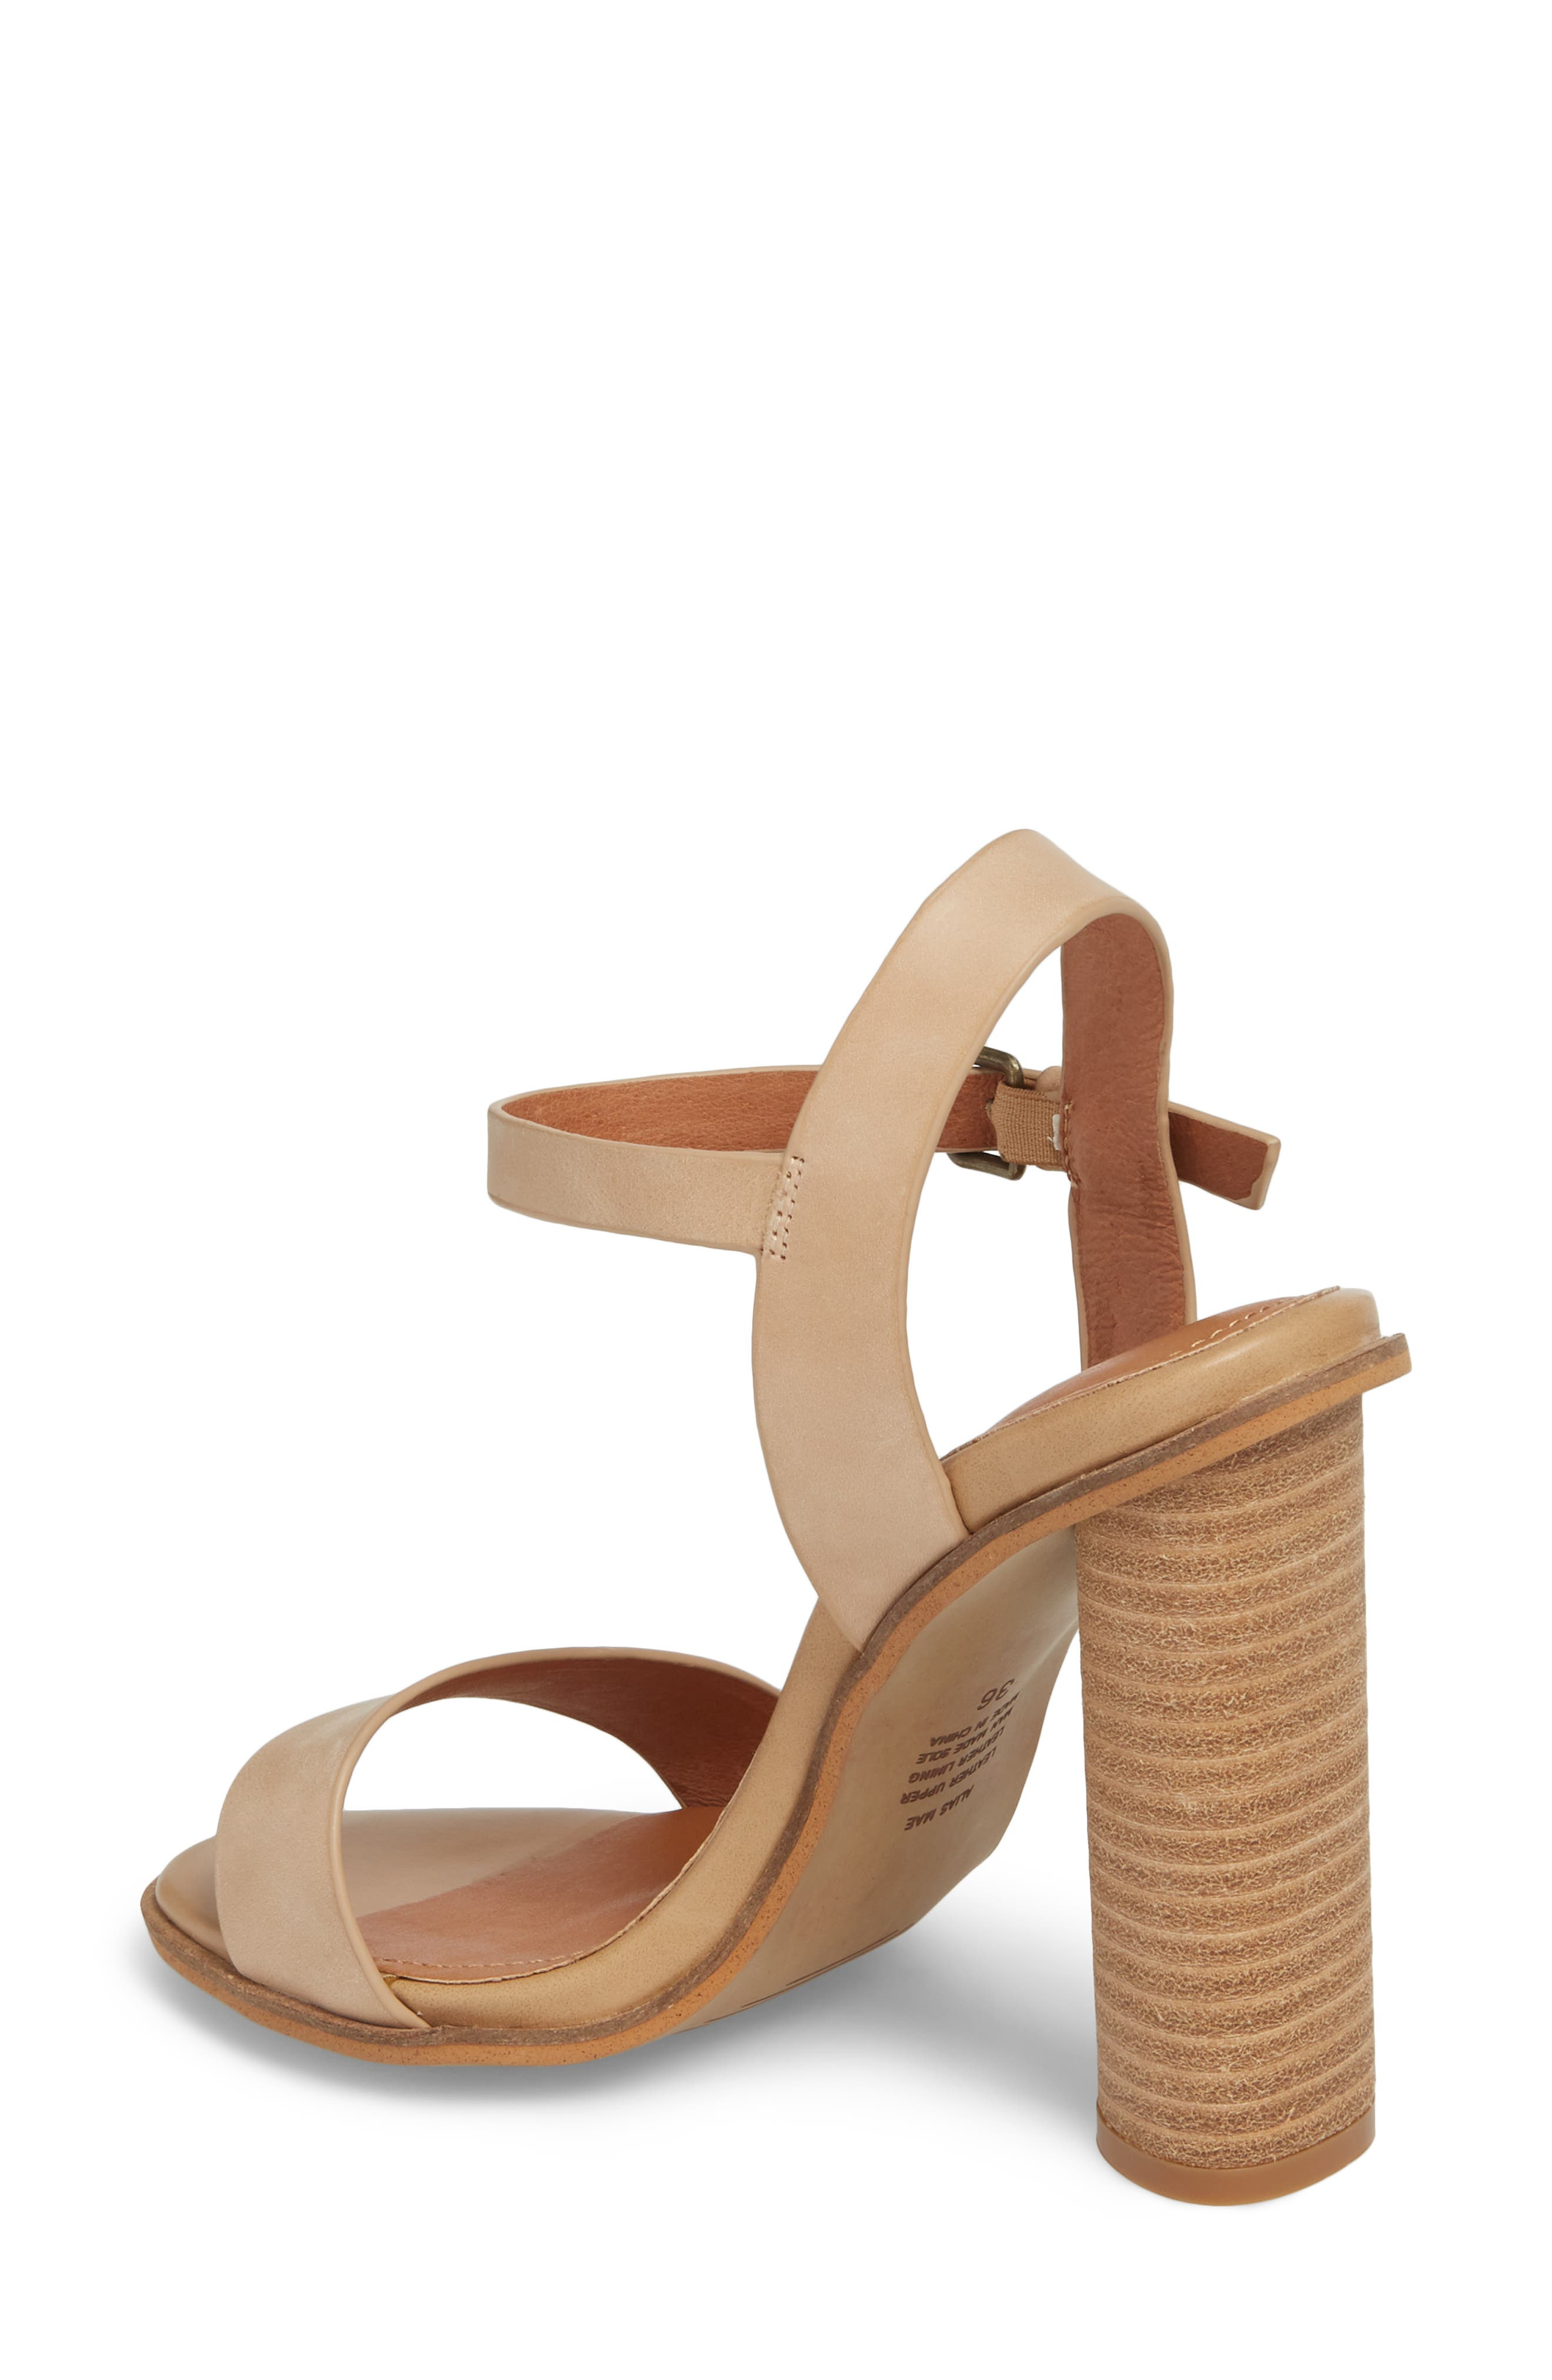 Abagail Sandal,                             Alternate thumbnail 2, color,                             NATURAL LEATHER